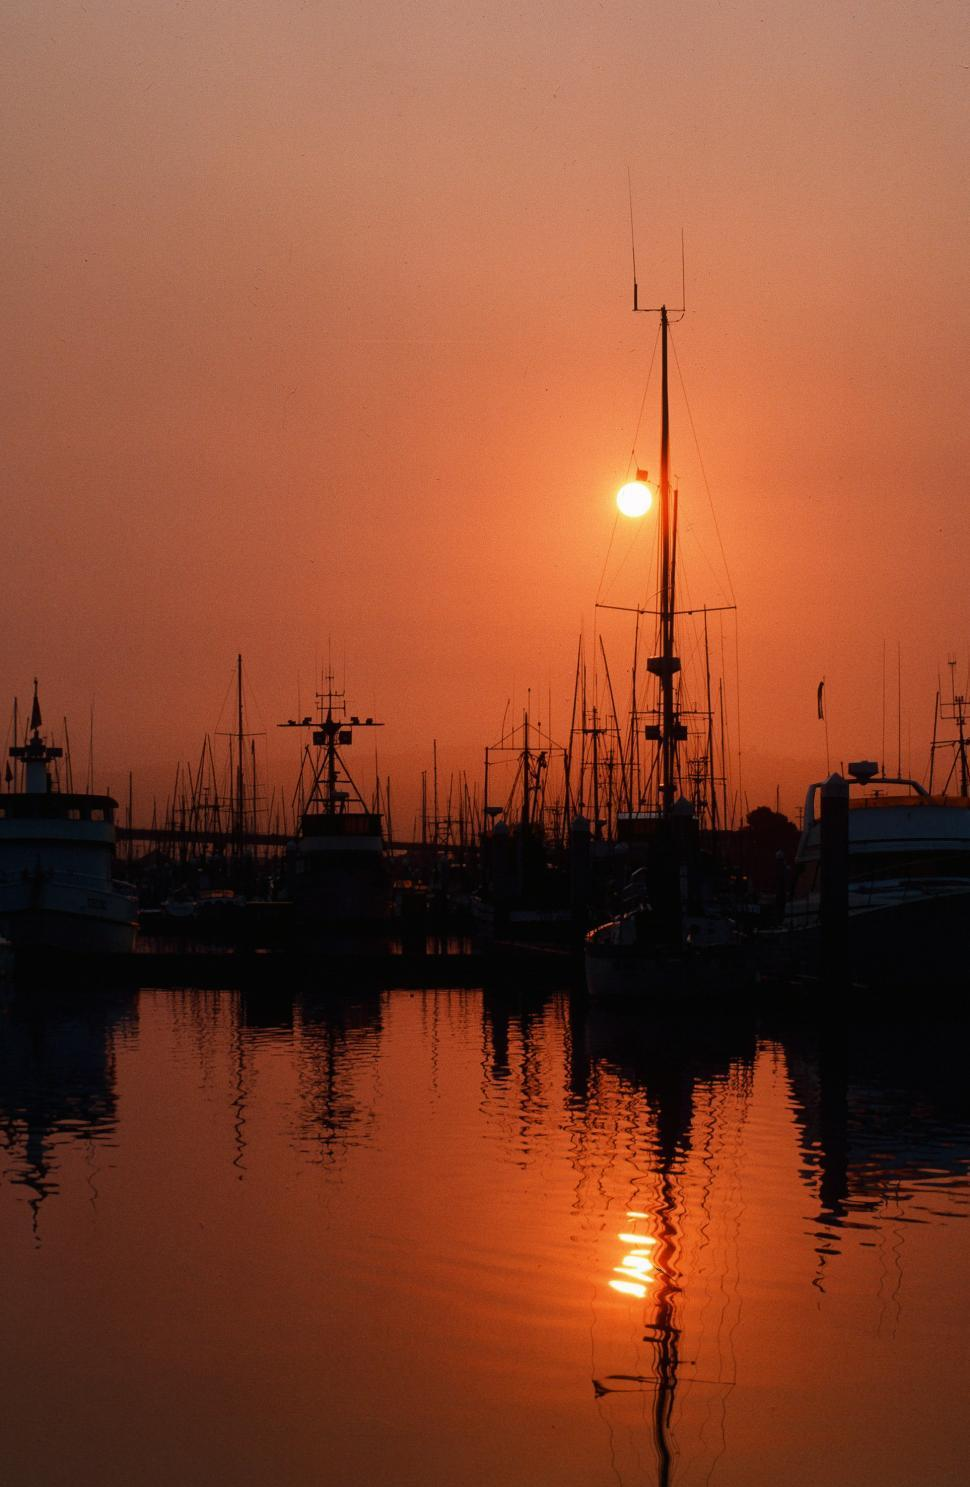 Download Free Stock Photo of Fishing boats in orange sunset